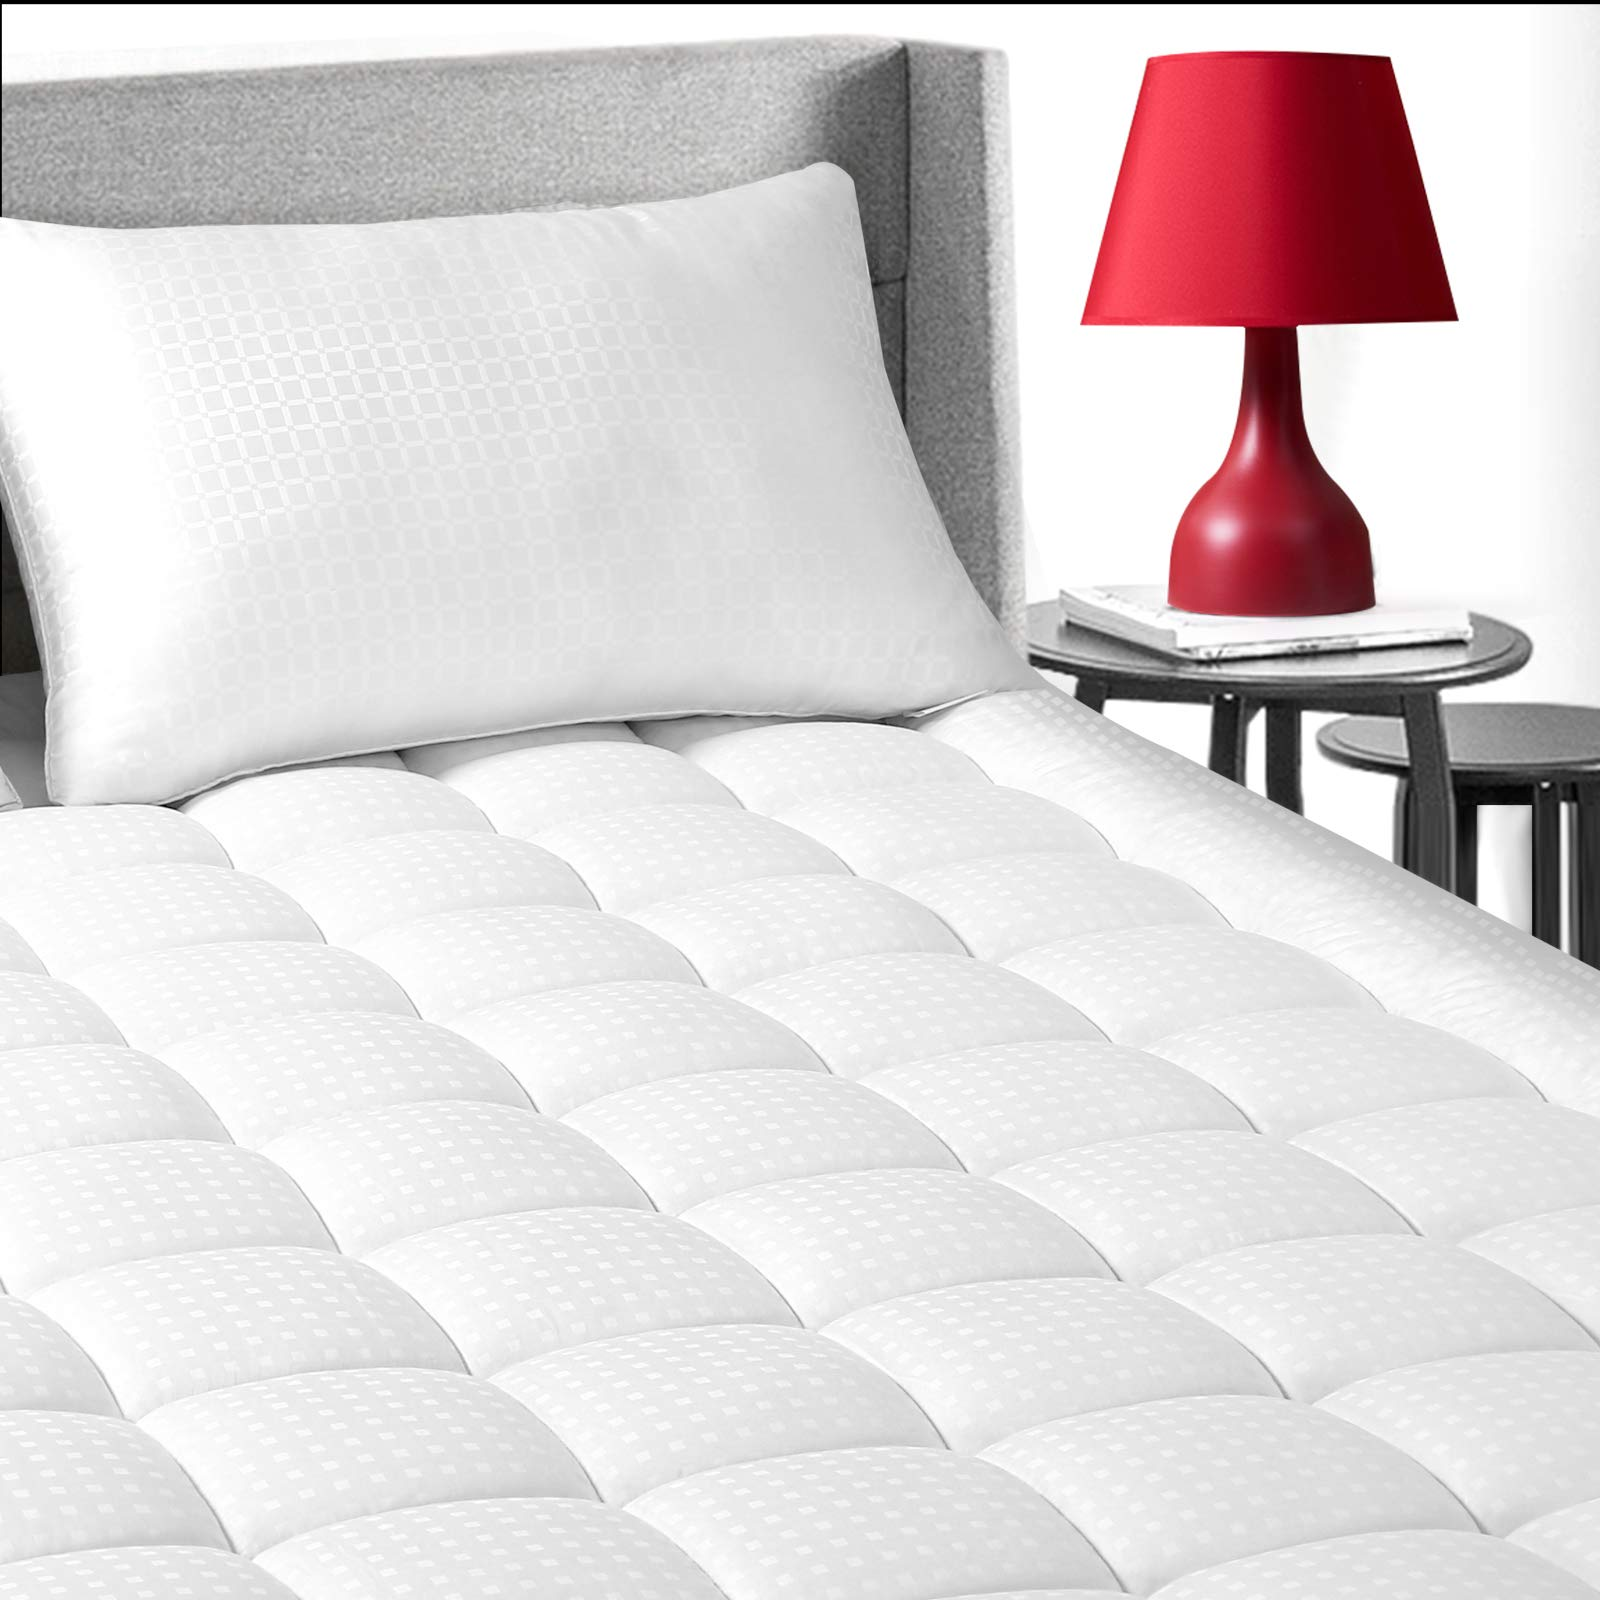 "EDILLY Twin Size Cooling Mattress Topper, Premium Hotel Quality Mattress Pad Cover, Protector for Bed Cotton Top Pillow Top Ultra Soft Overfilled with 8-21"" Deep Pocket Luxury"